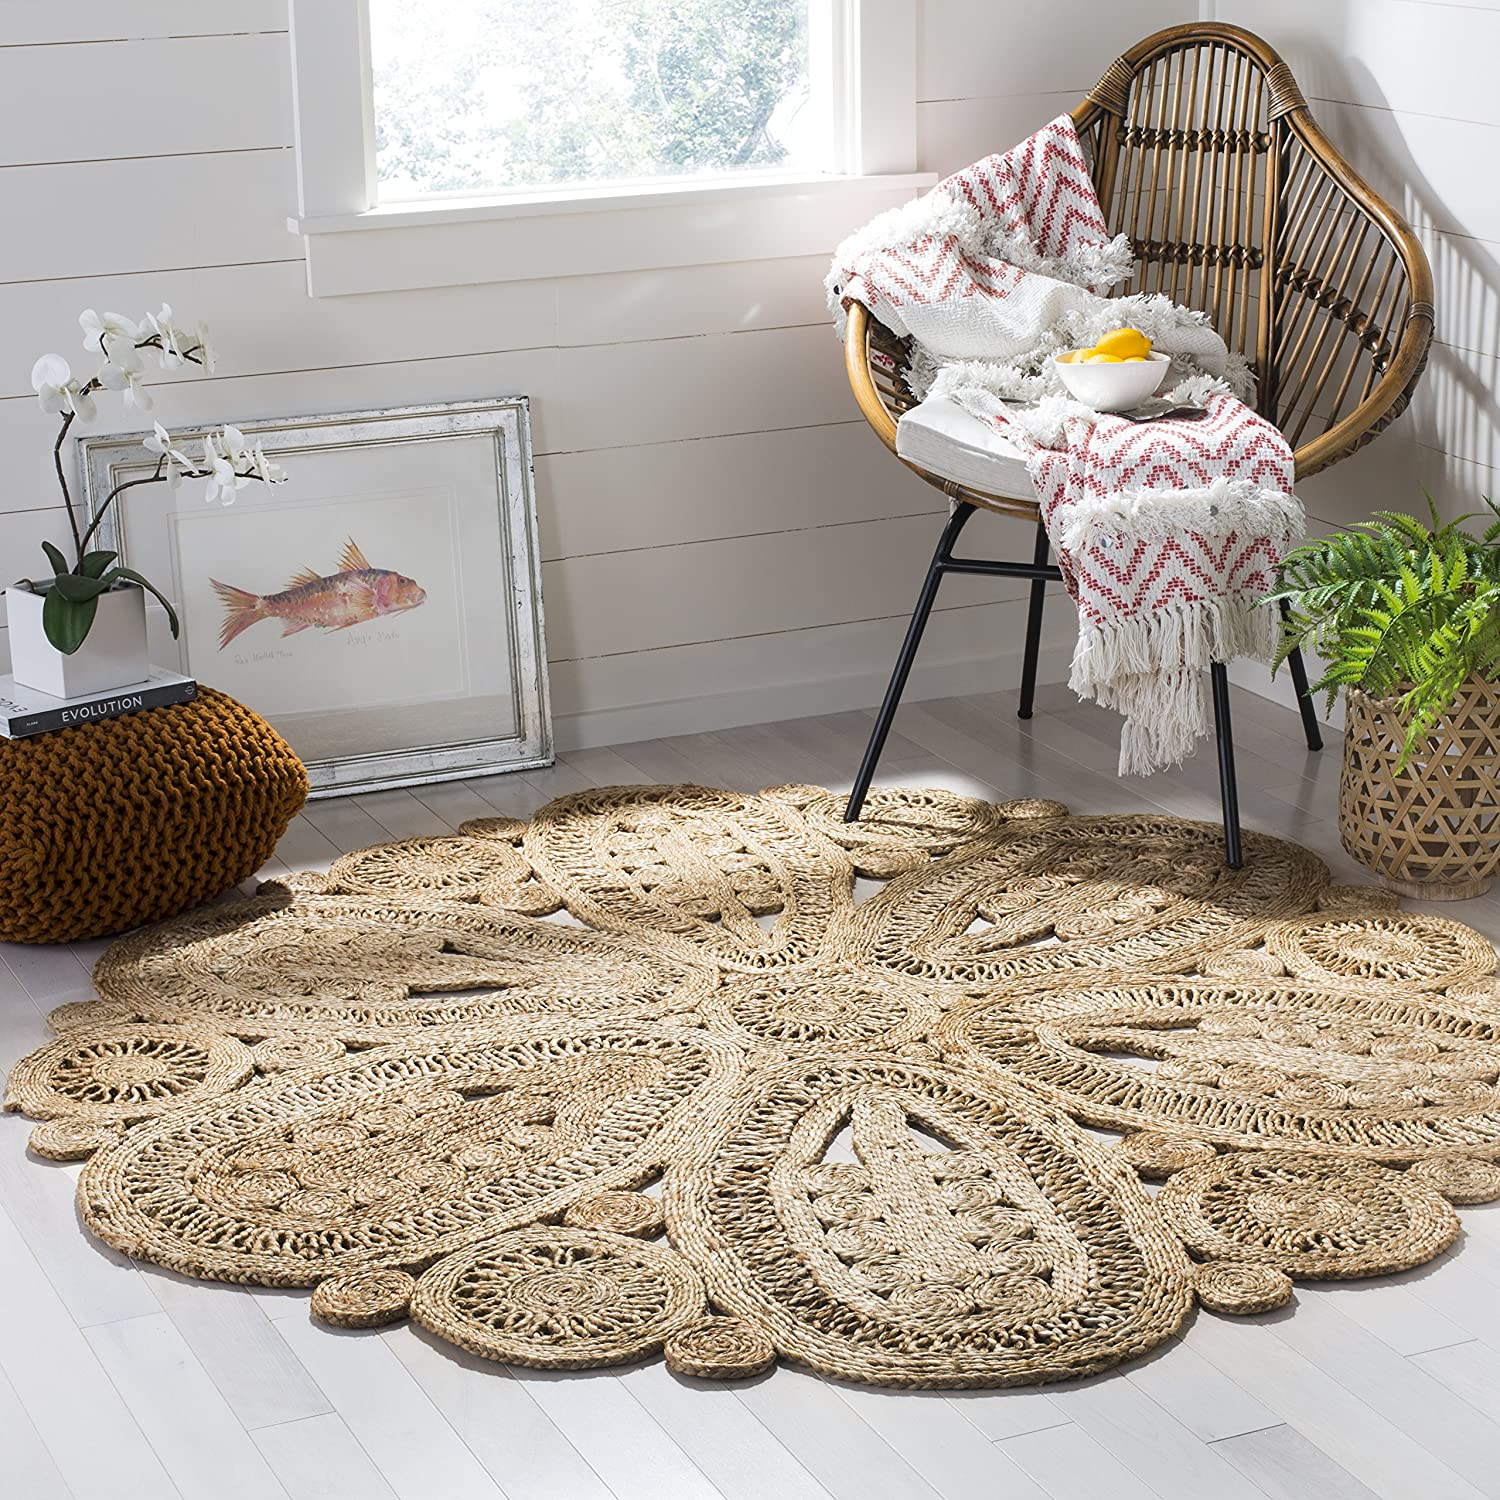 Safavieh Natural Fiber Collection Vintage Area Rug, 6' Diameter